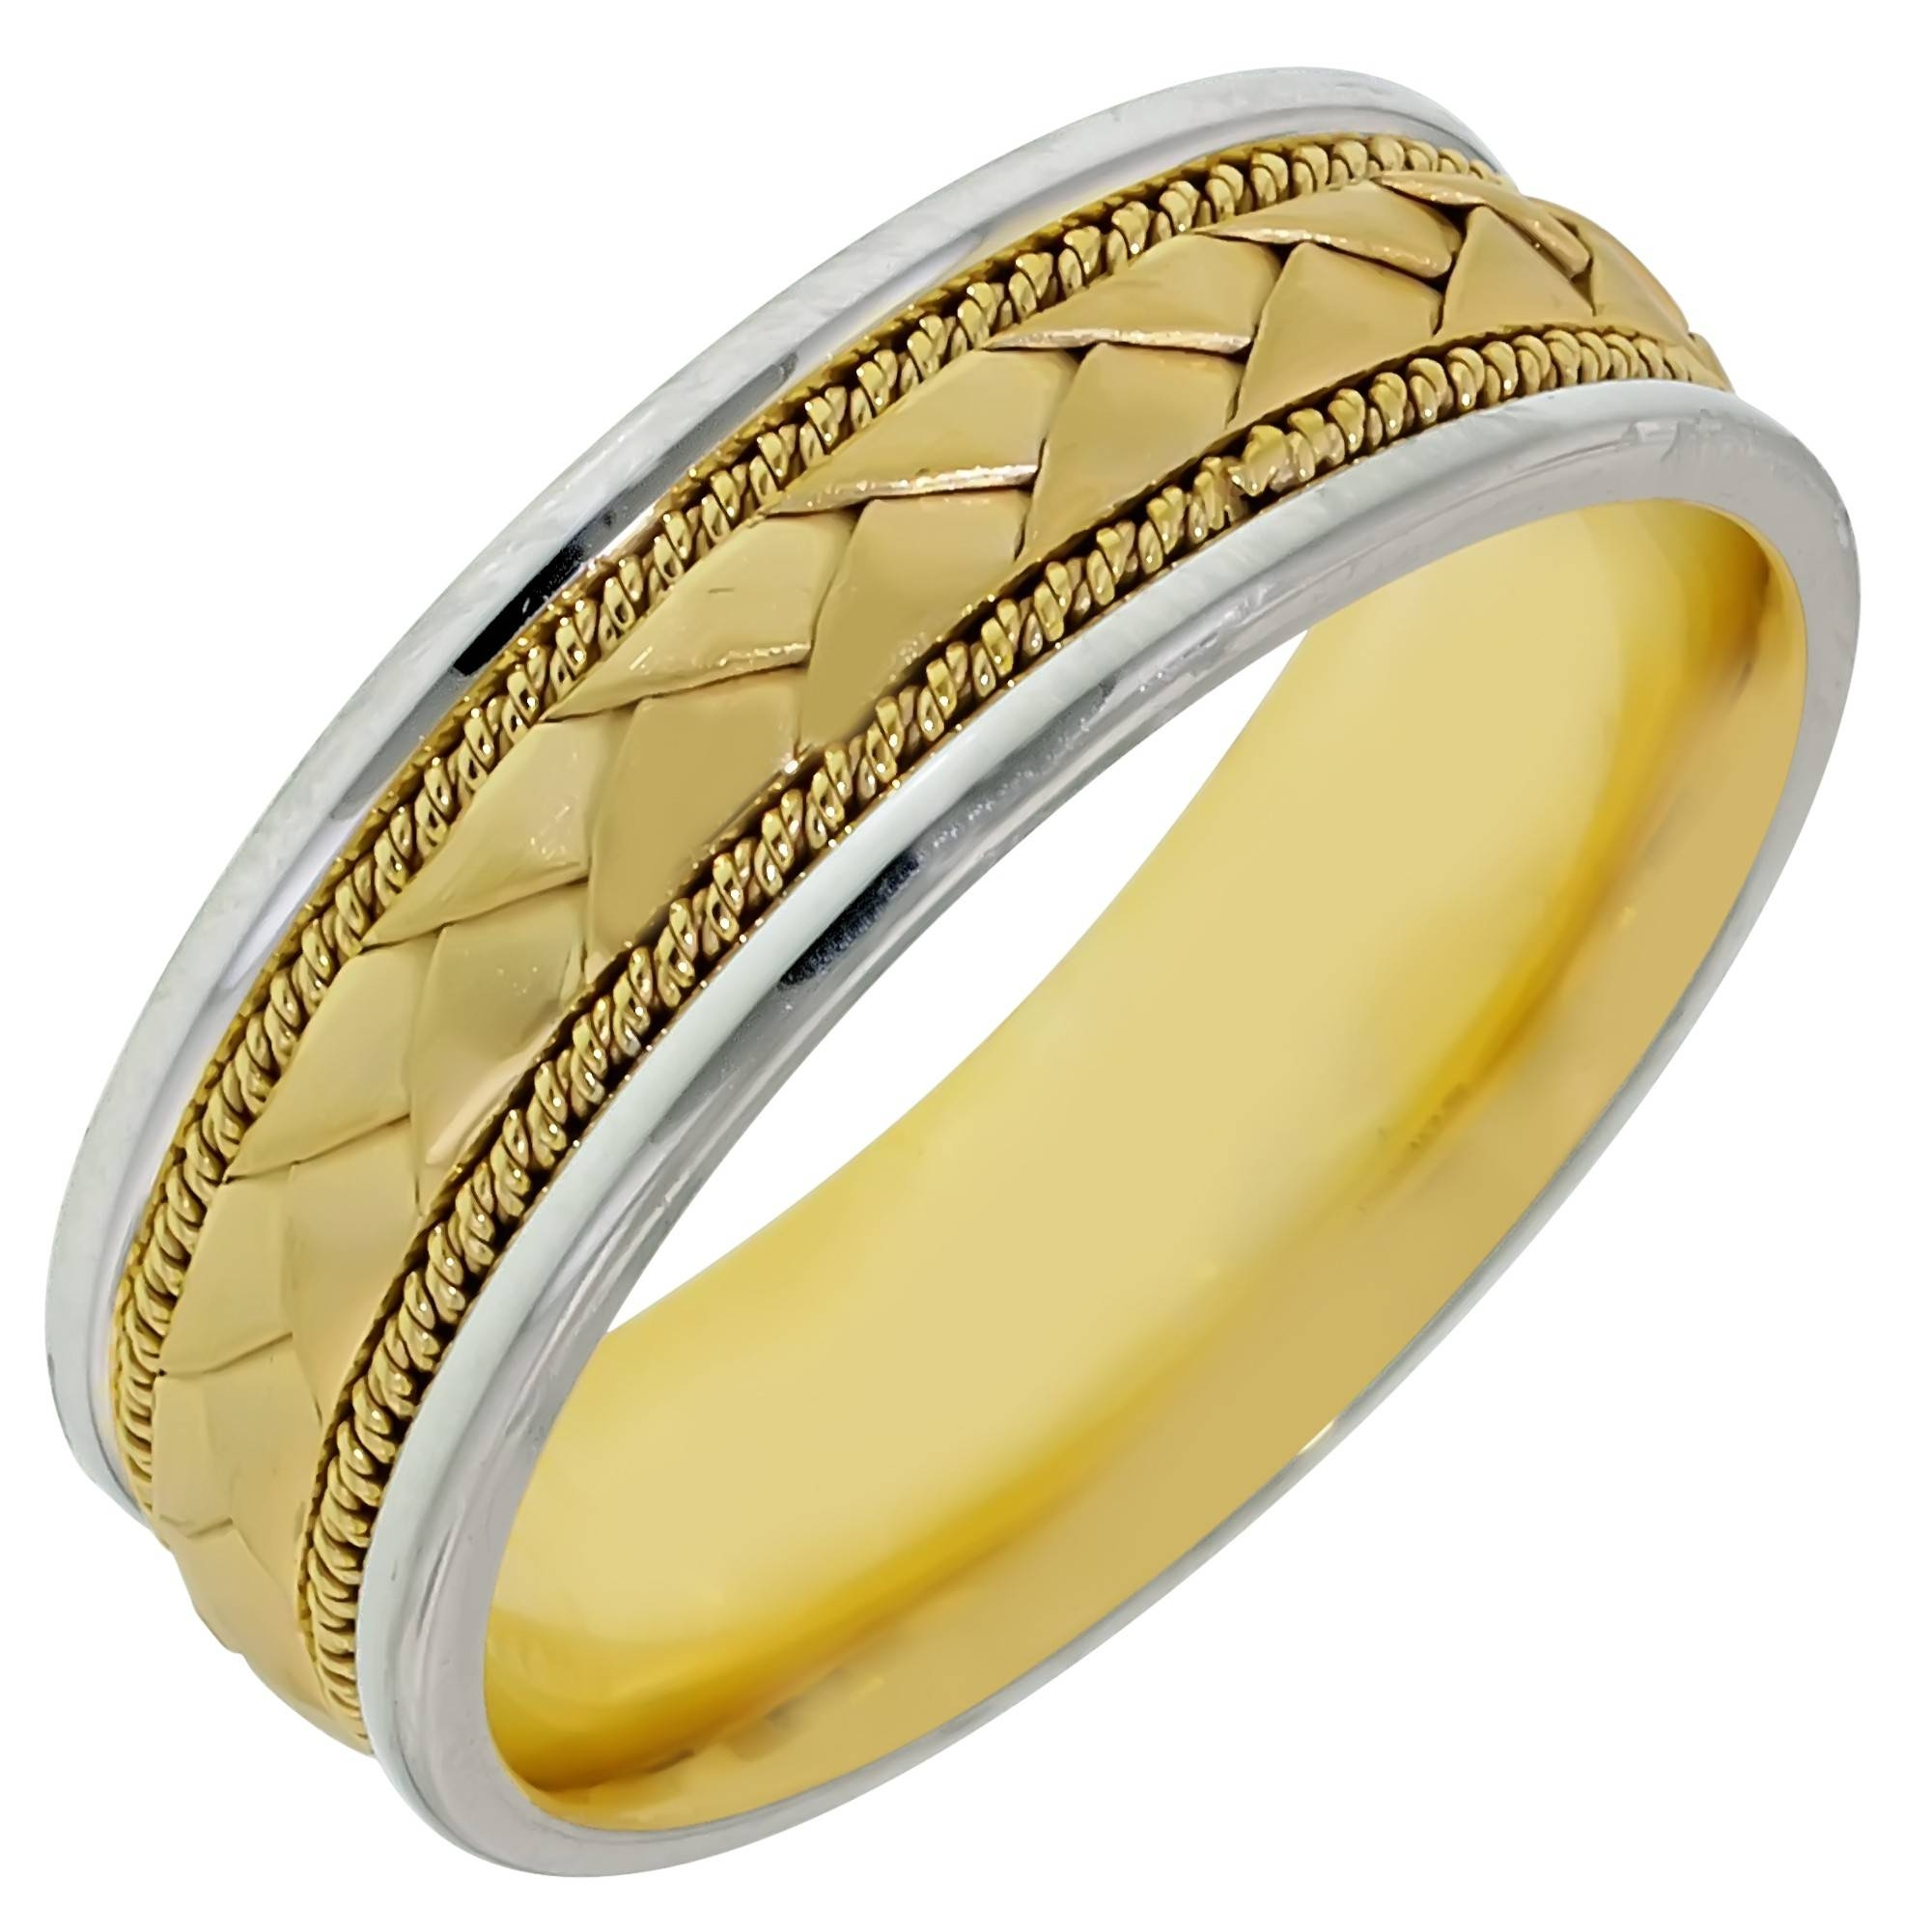 Dora Mens Braided Wedding Band In 14kt White And Yellow Gold (7mm) Intended For White And Yellow Gold Wedding Bands (View 14 of 15)